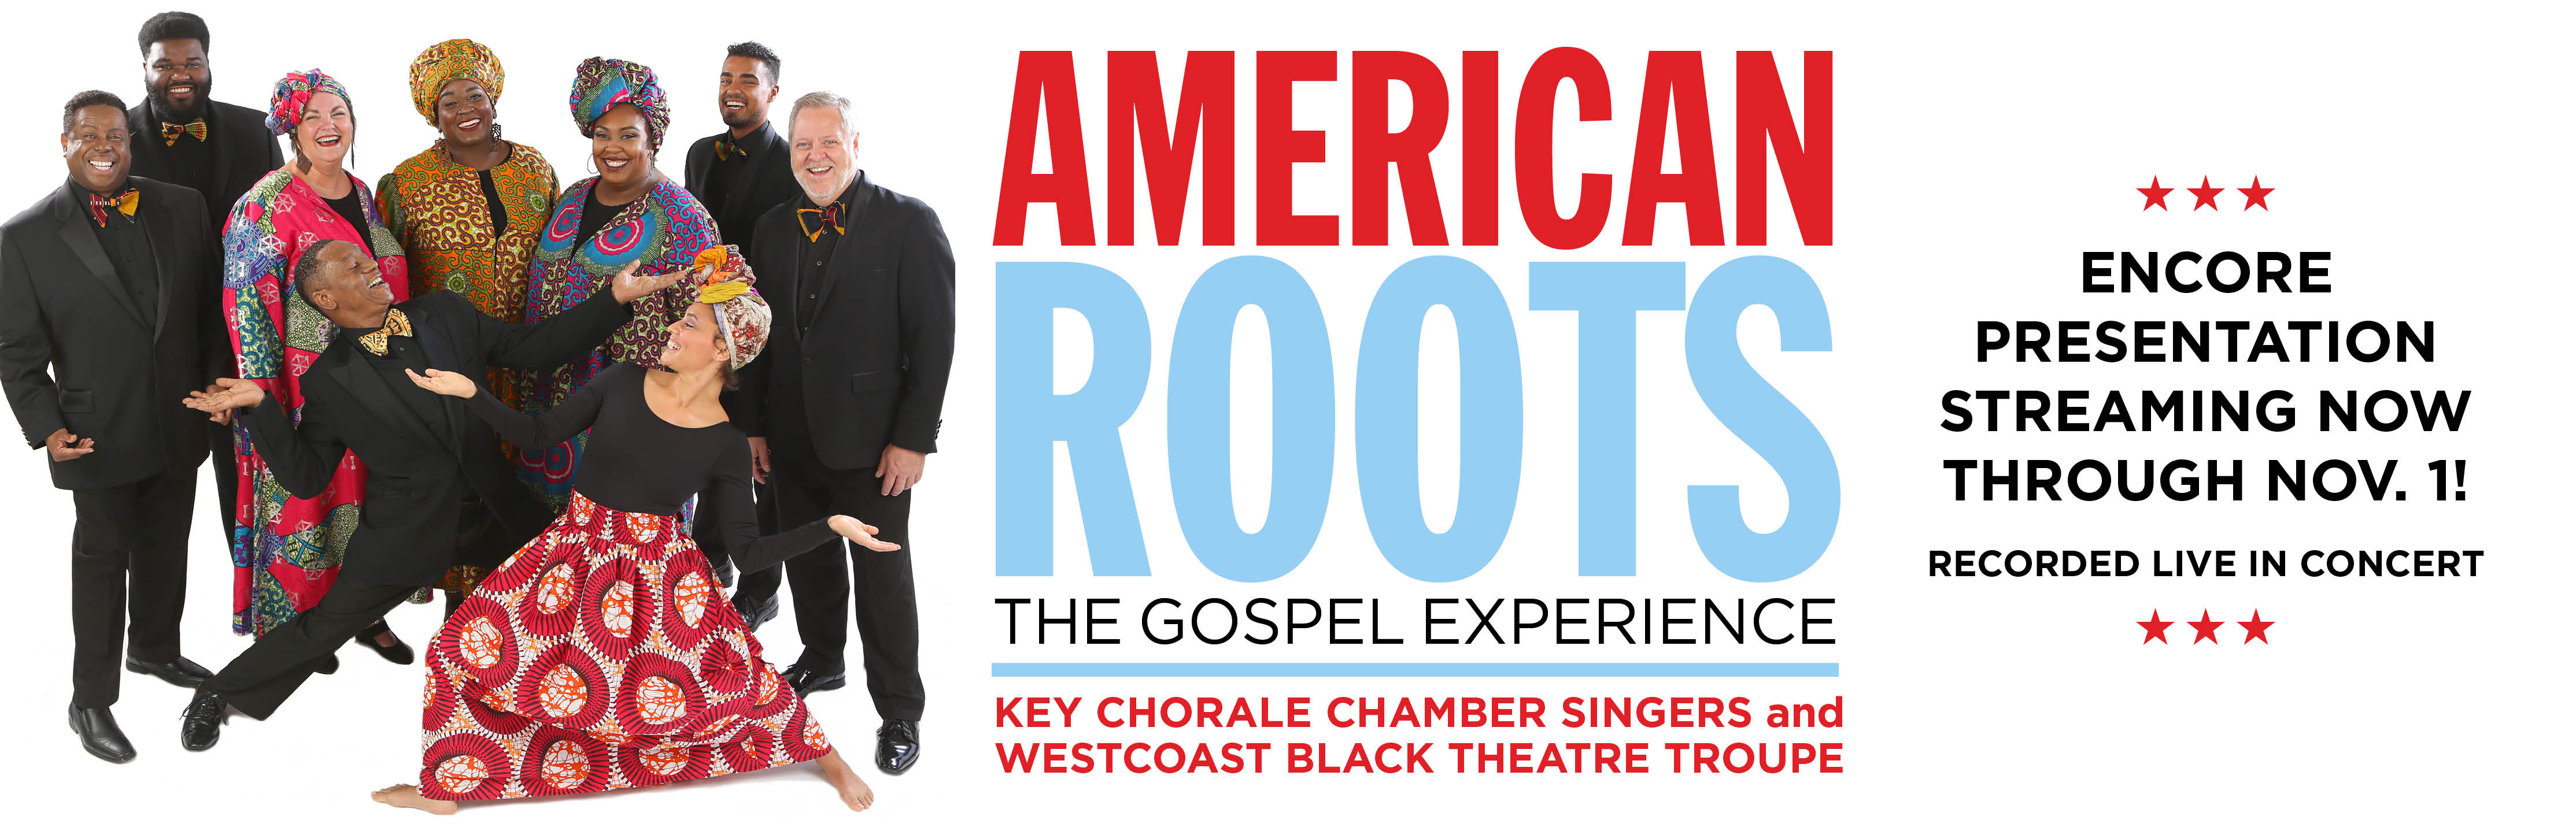 American Roots The Gospel Experience; Encore Presentation Screening through Nov 1